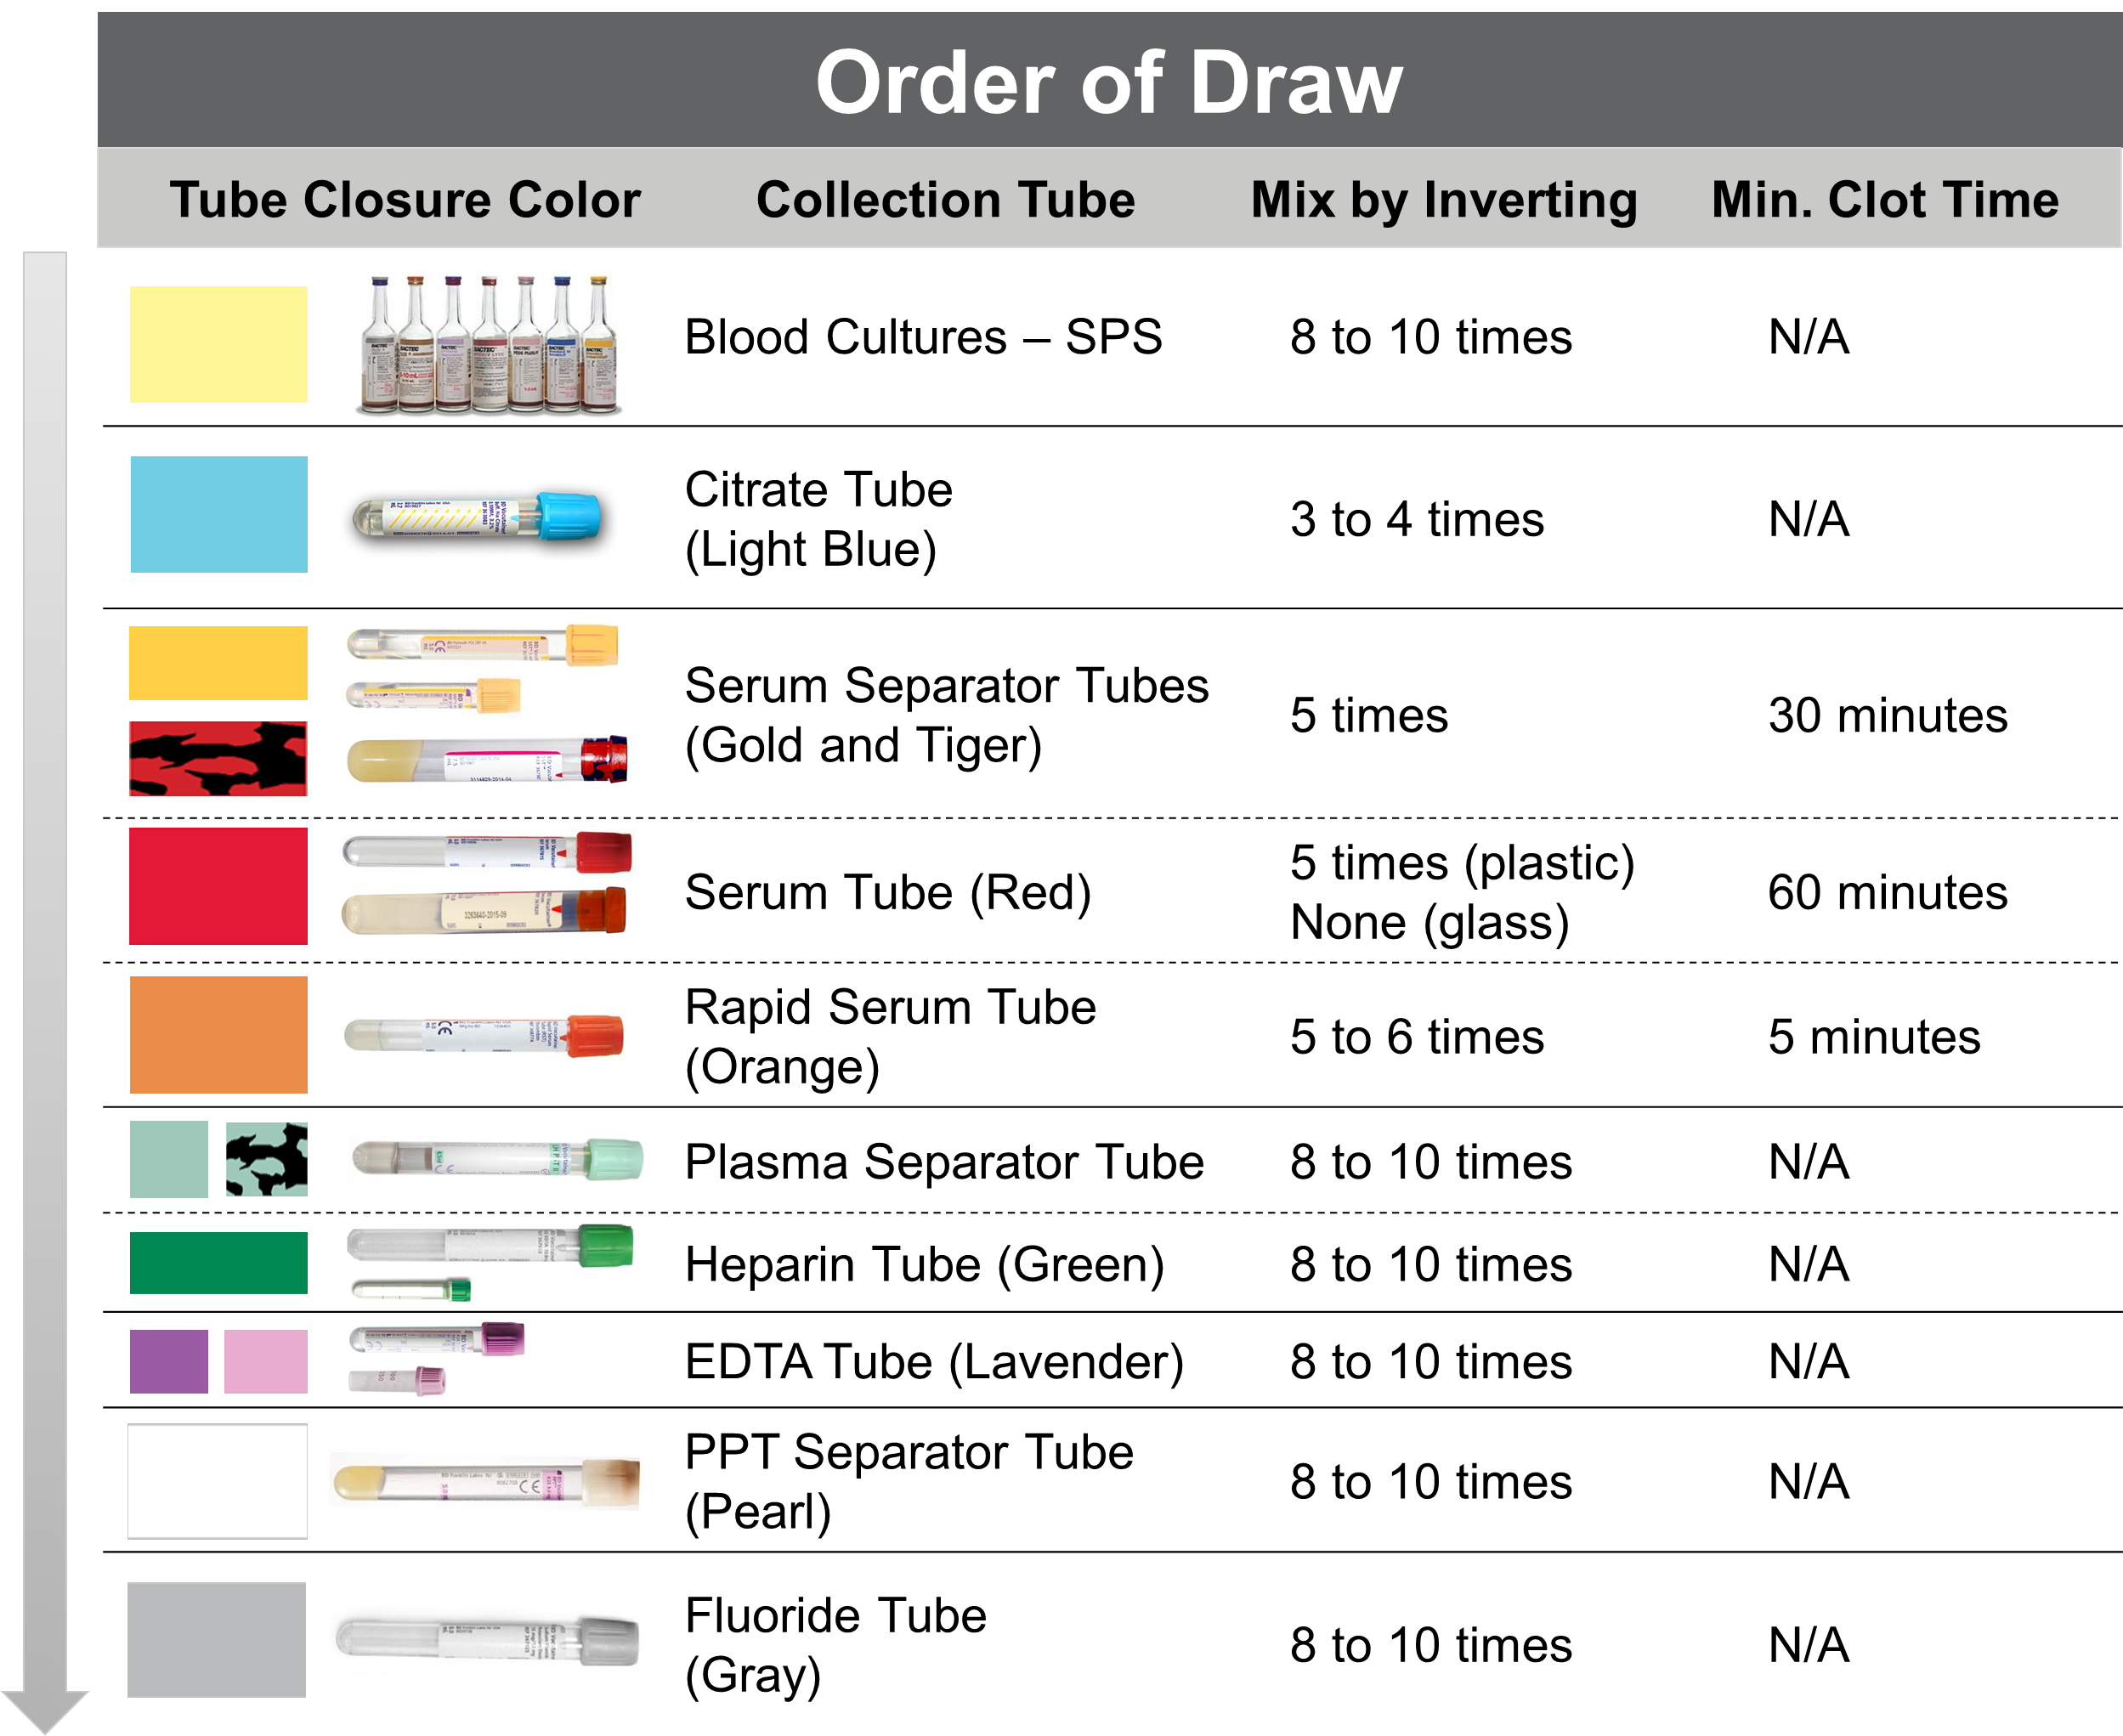 Drawing abgs. Order of draw certified